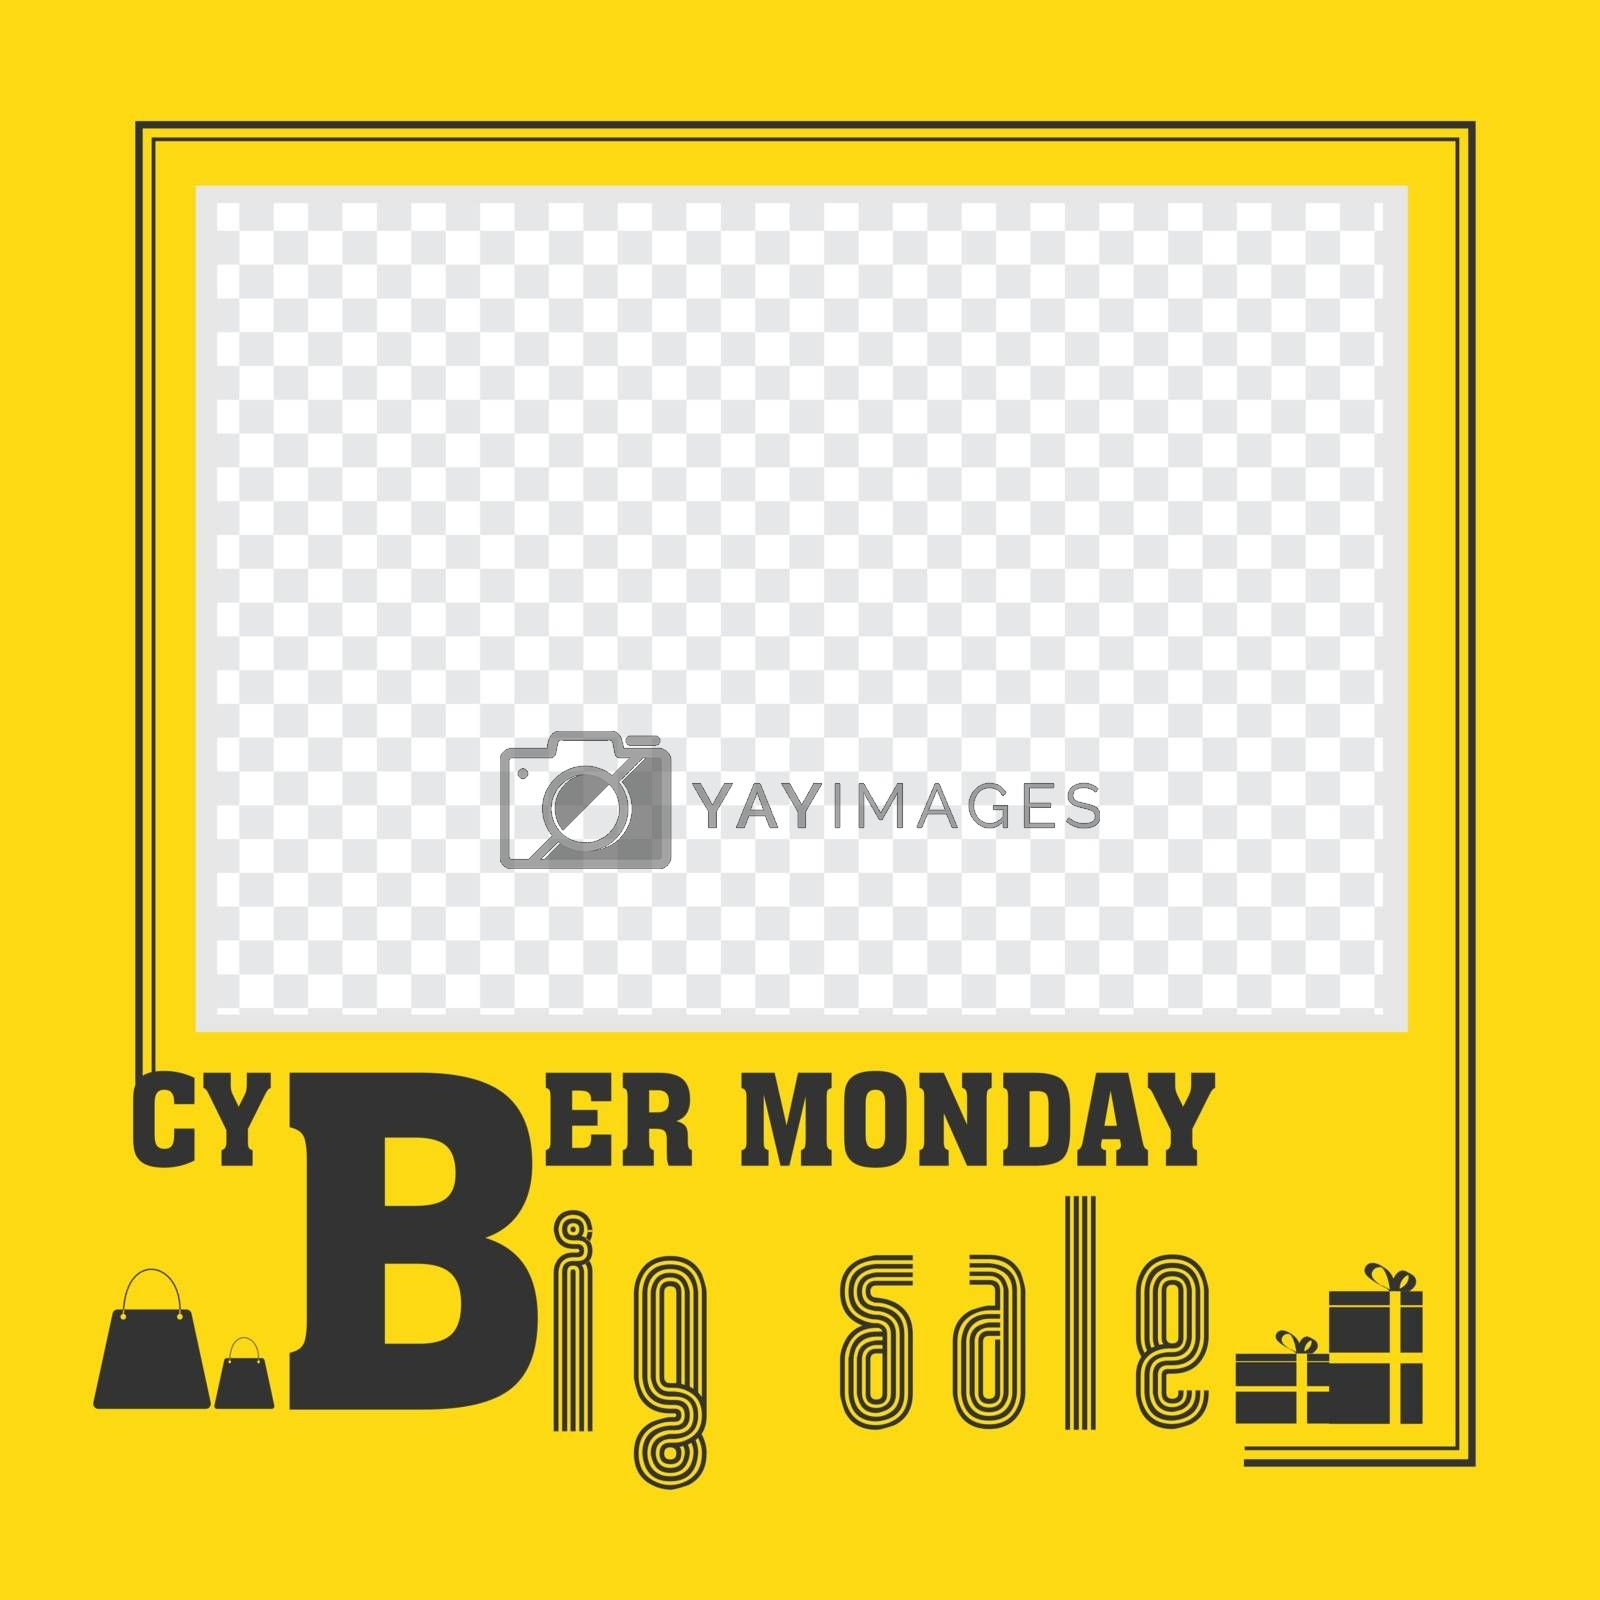 Big Cyber Monday Sale template or poster design in yellow color  by aispl